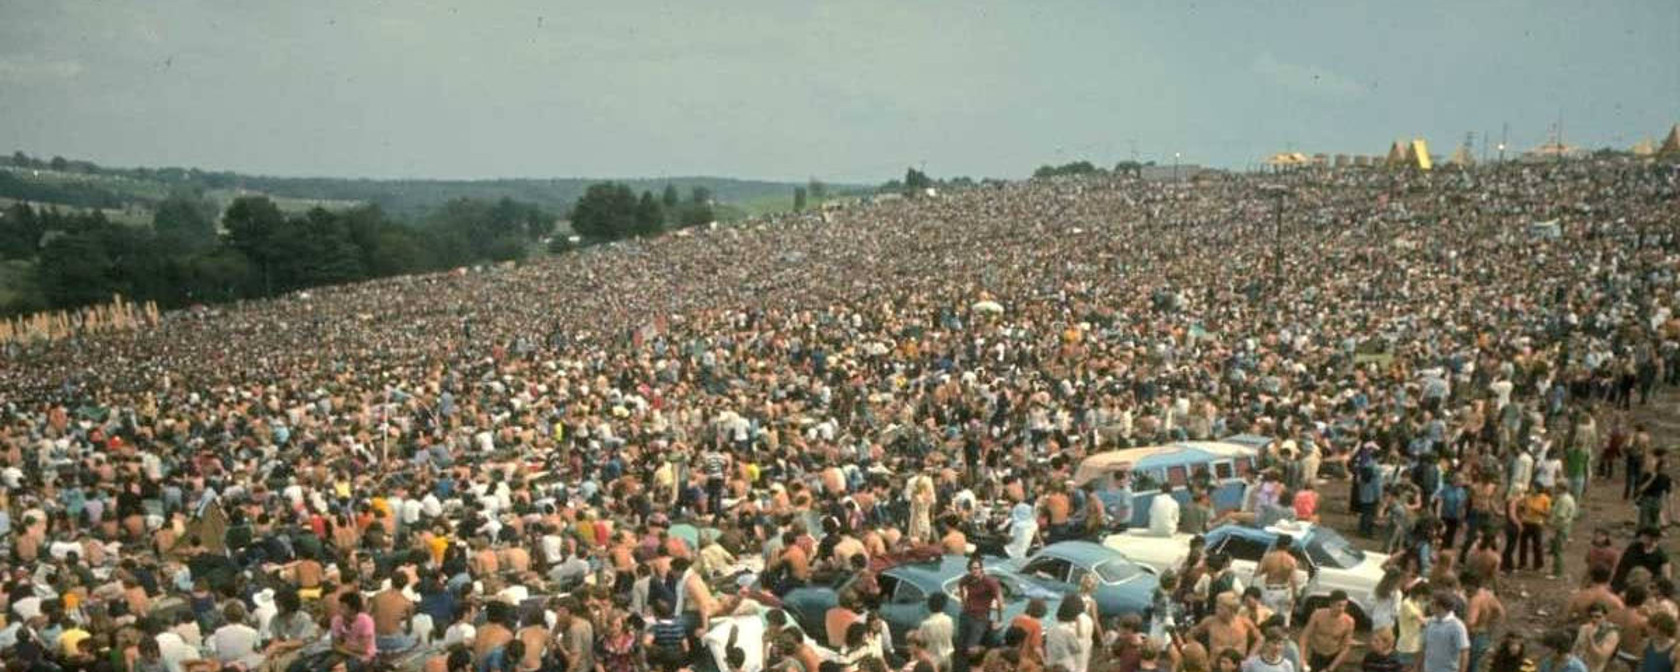 a synopsis of woodstock 1969